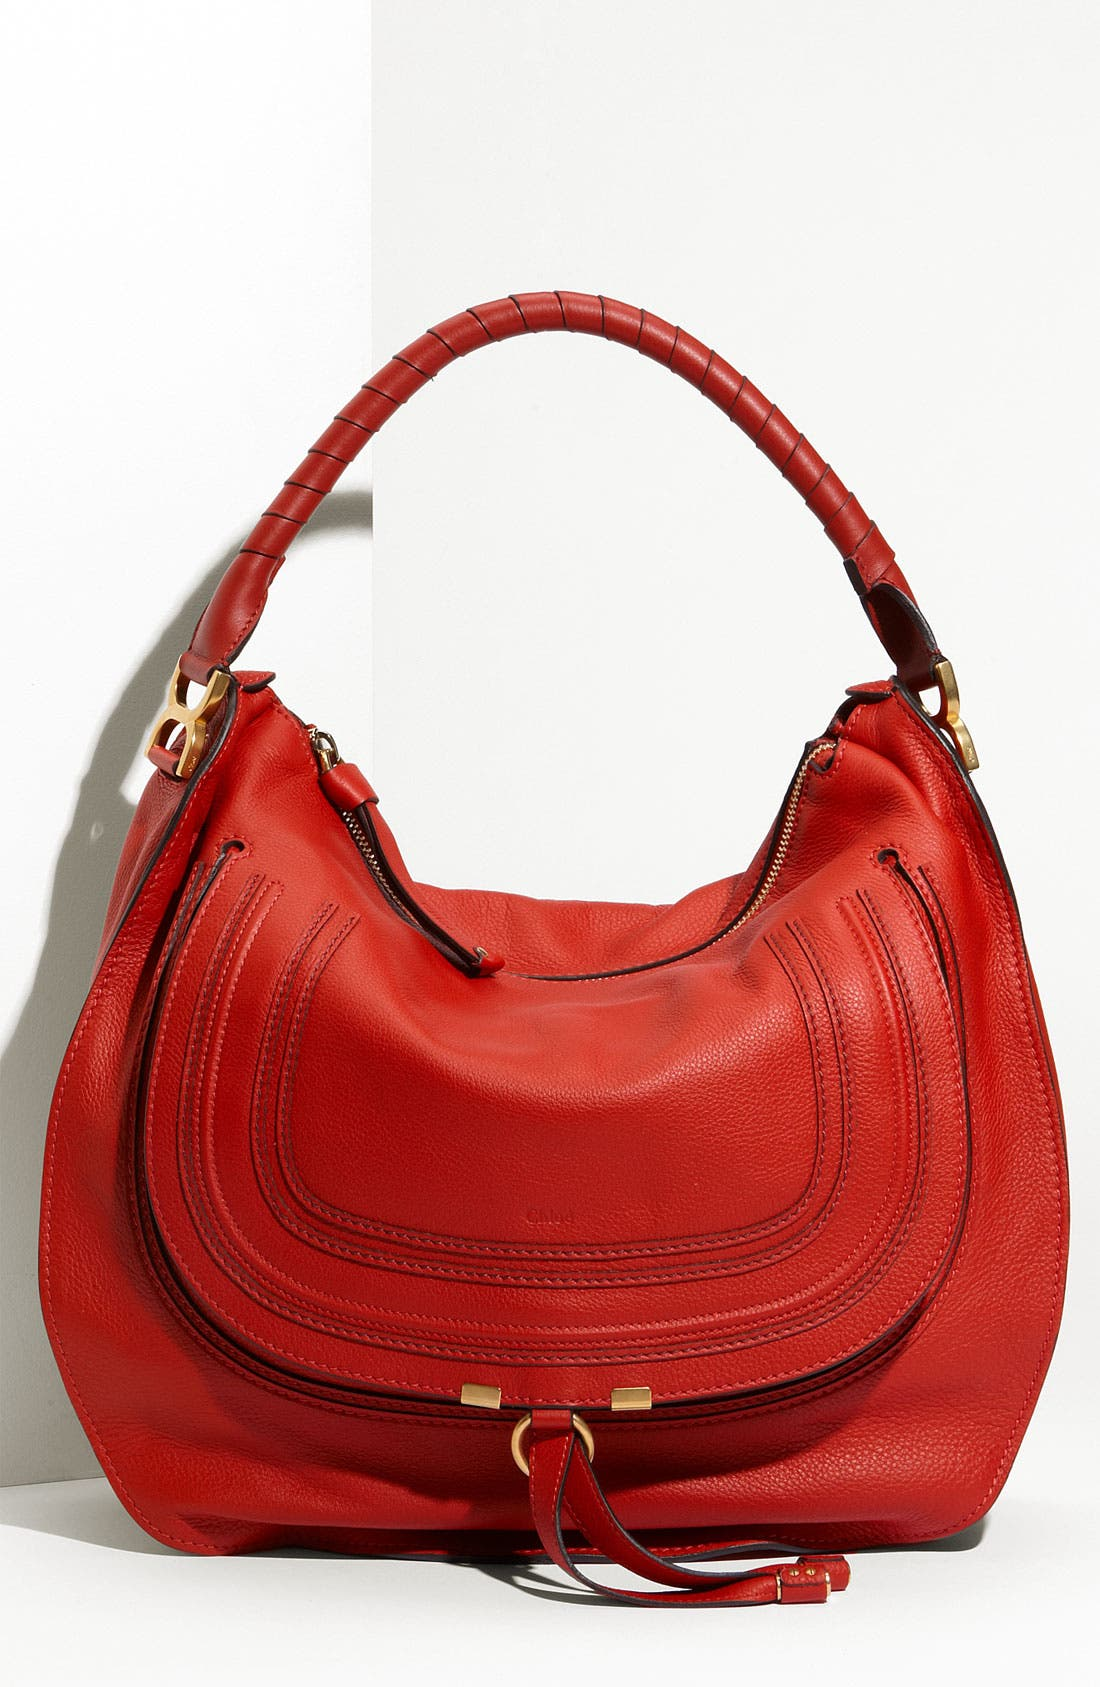 Main Image - Chloé 'Marcie - Large' Leather Hobo